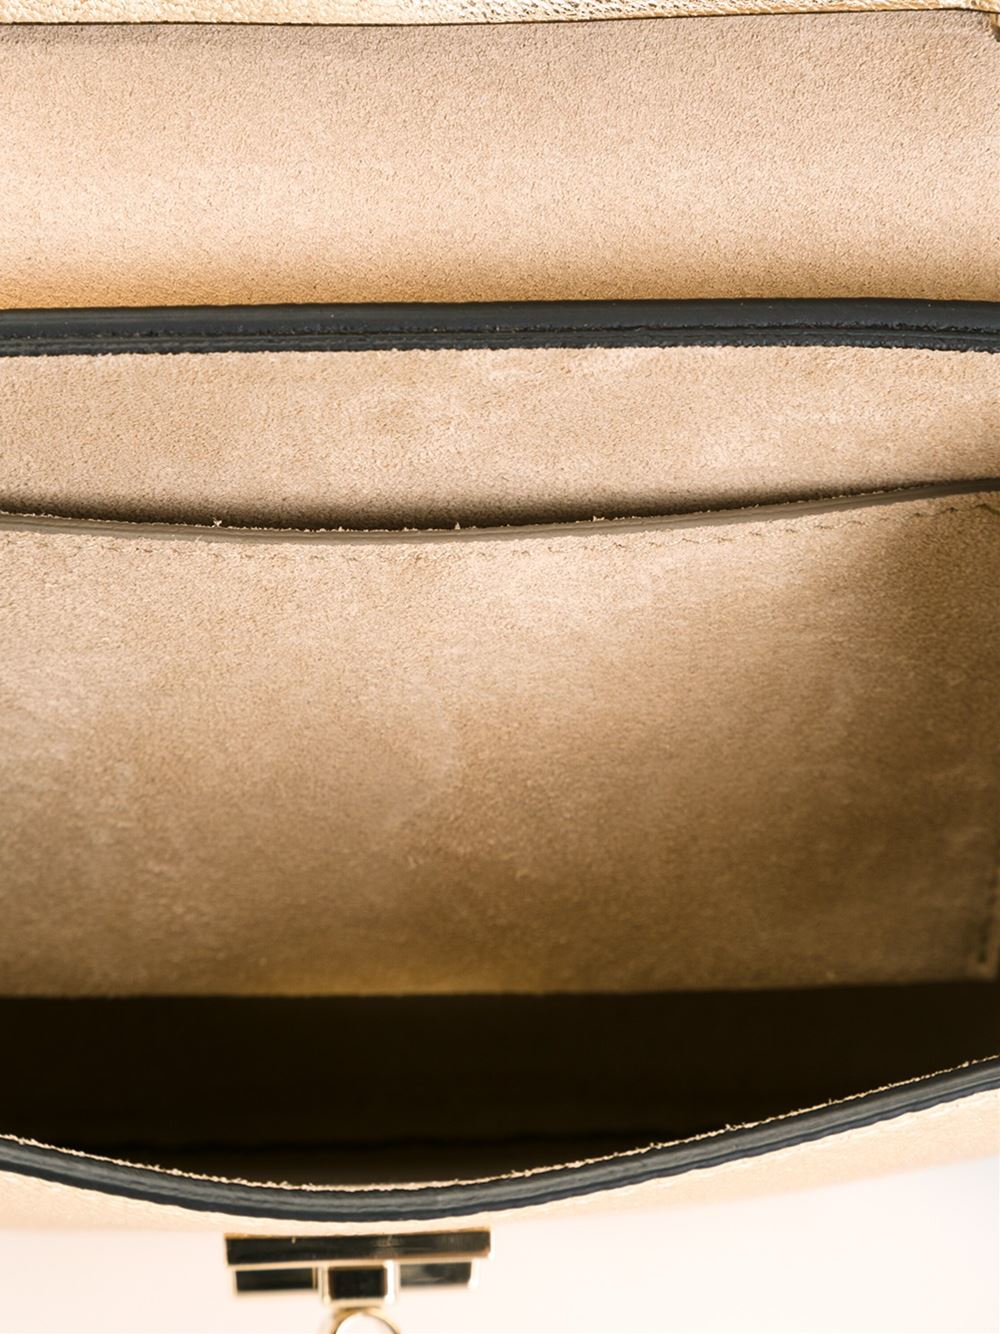 chloe brand handbags - chloe metallic messenger bag, fake chloe bags uk